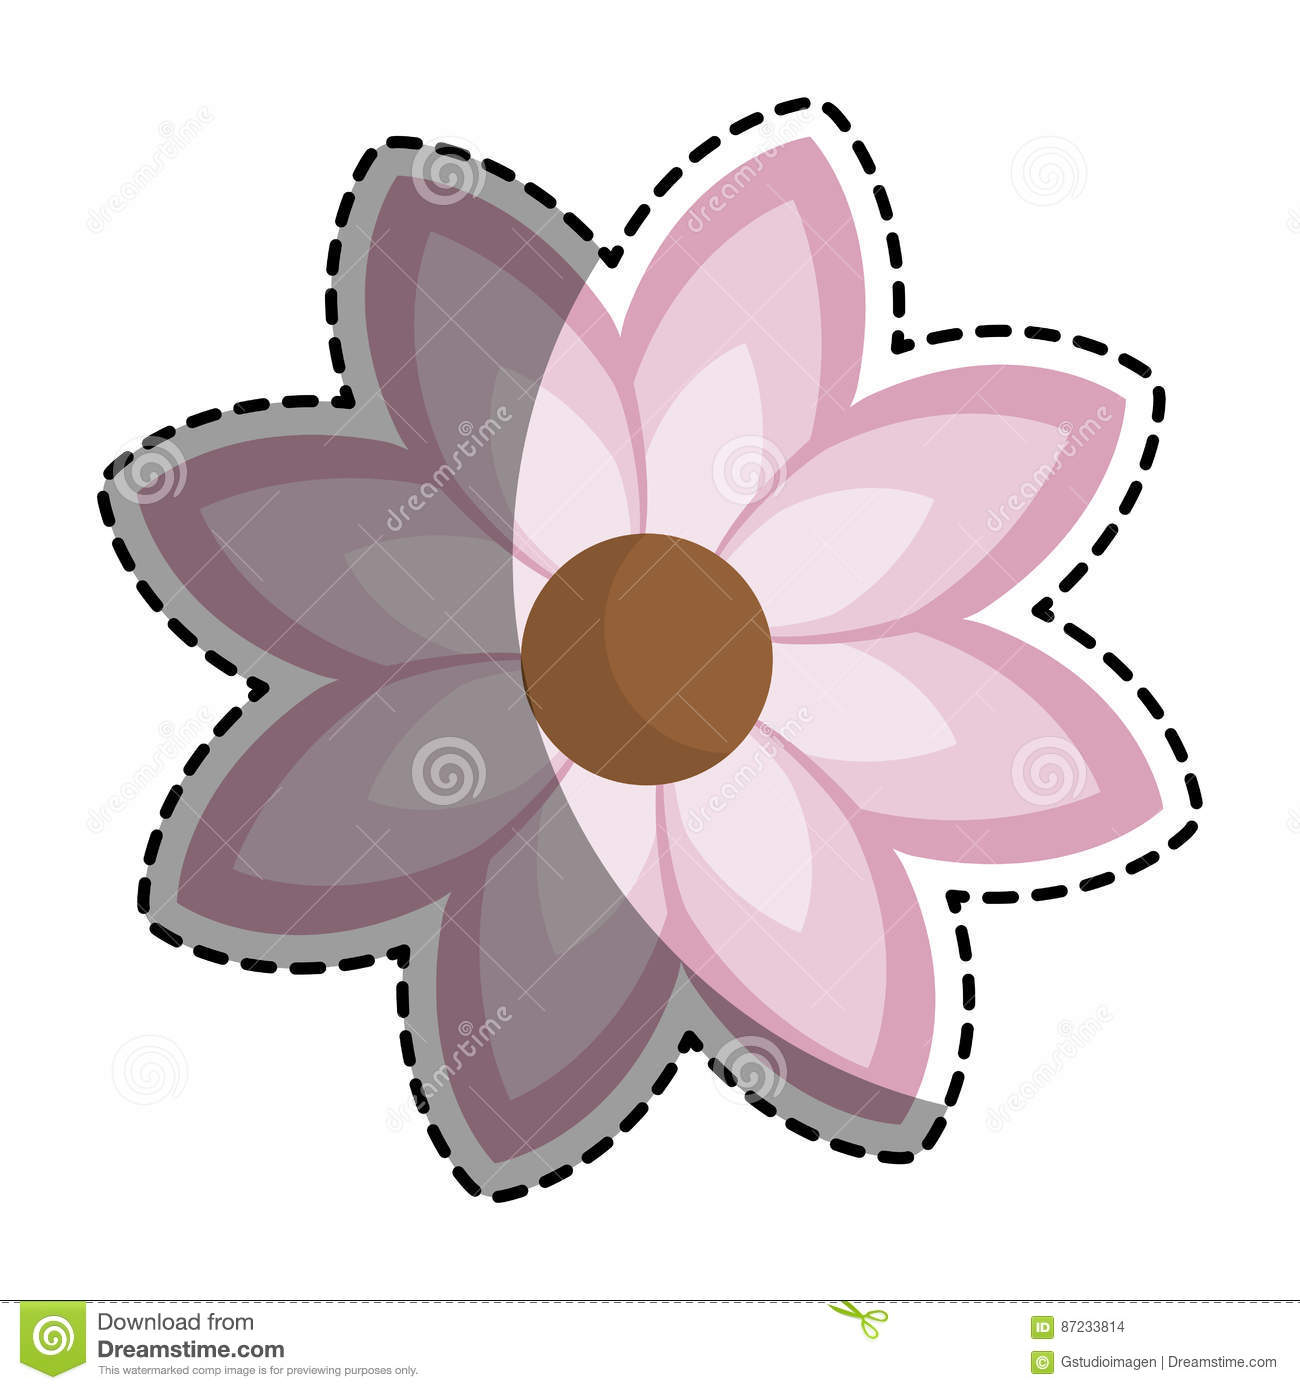 Silhouette sticker with pink flower icon floral stock vector floral flower icon illustration pink dhlflorist Images